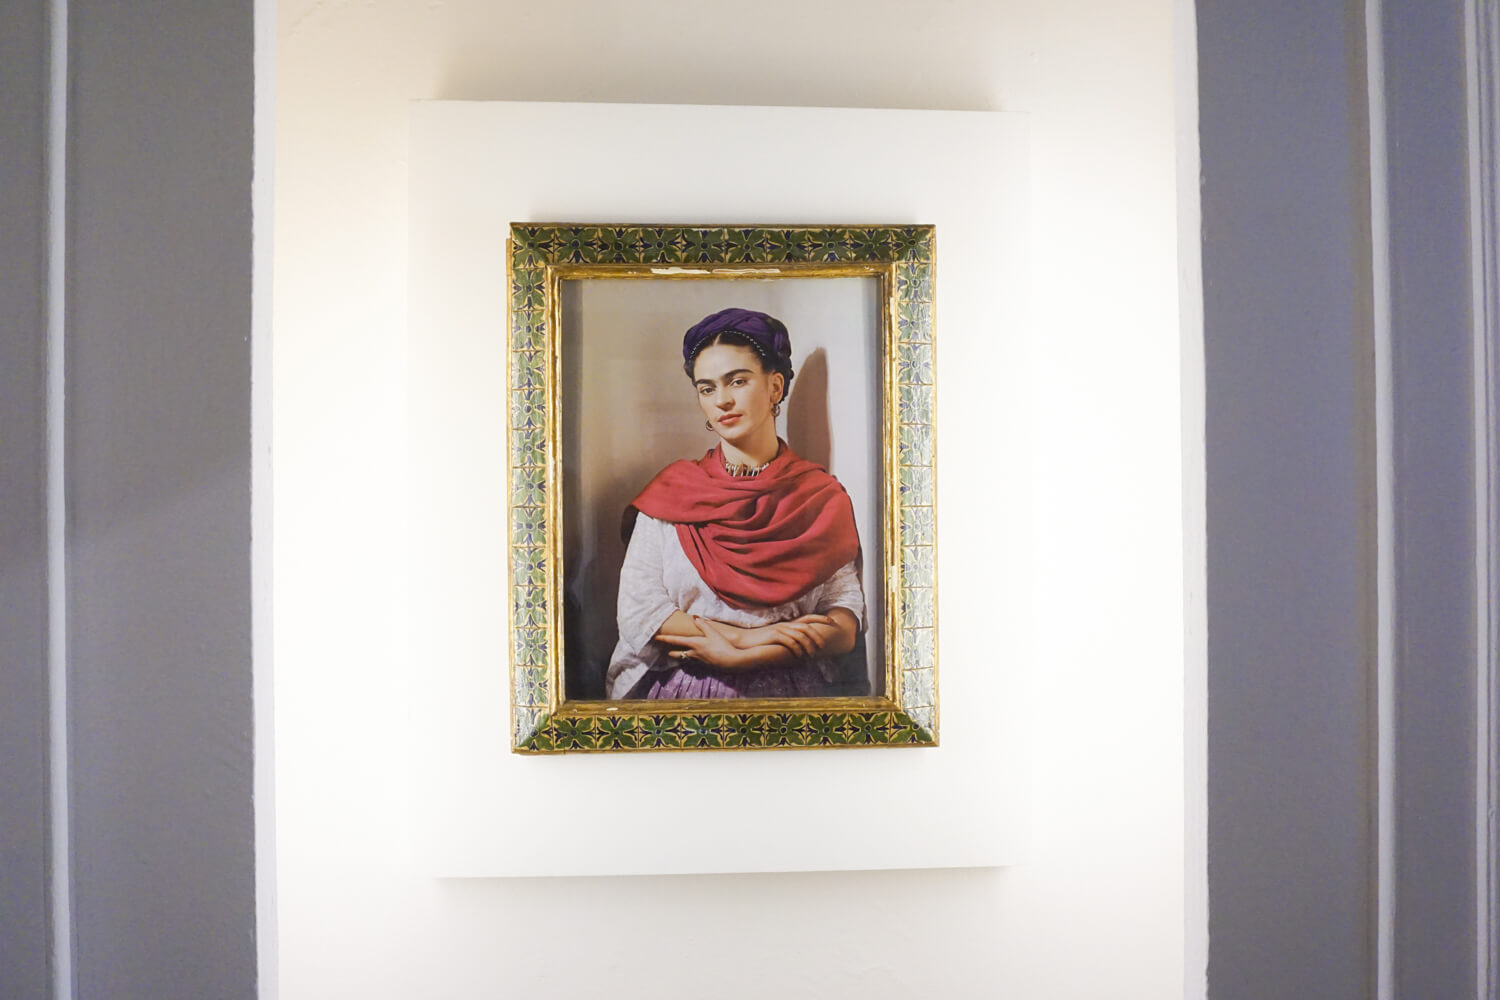 Visiting the Frida Kahlo museum is a MUST in Mexico City